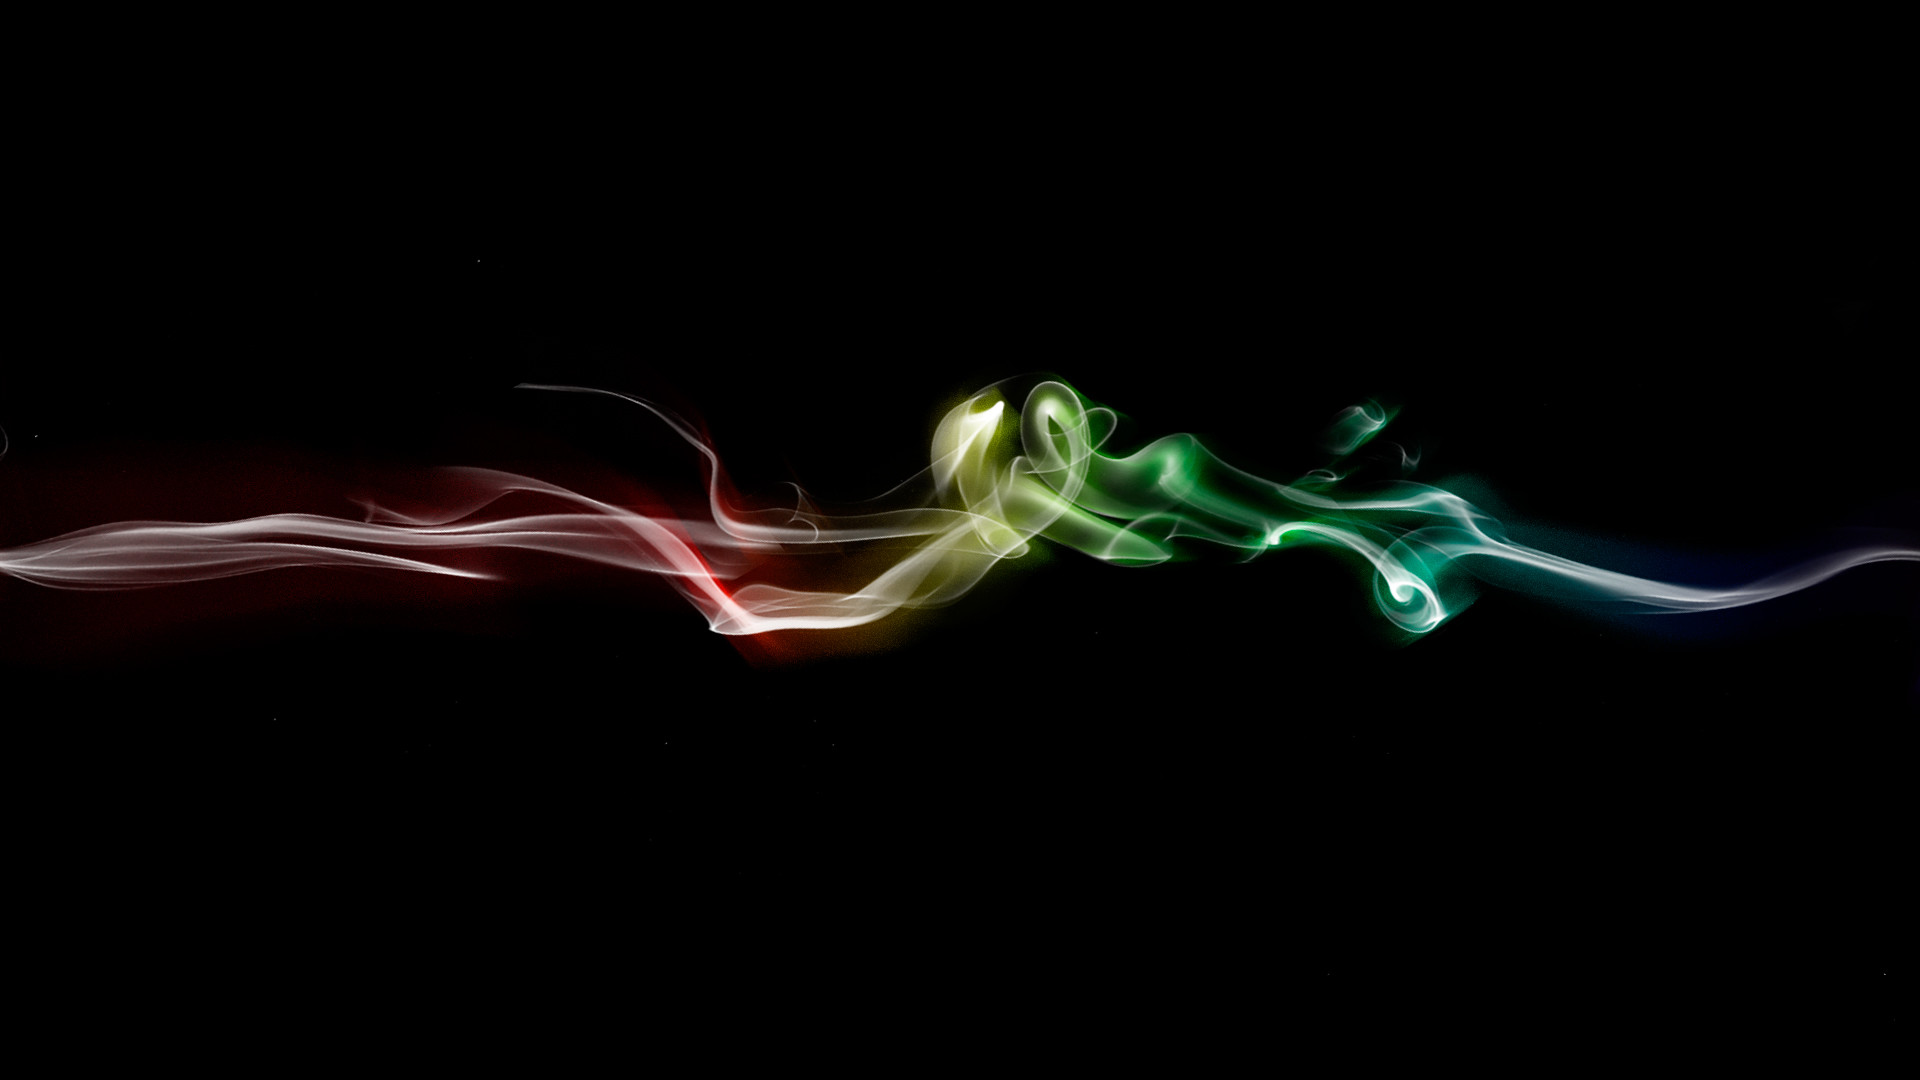 1920x1080 smoke wallpapers for mac desktop